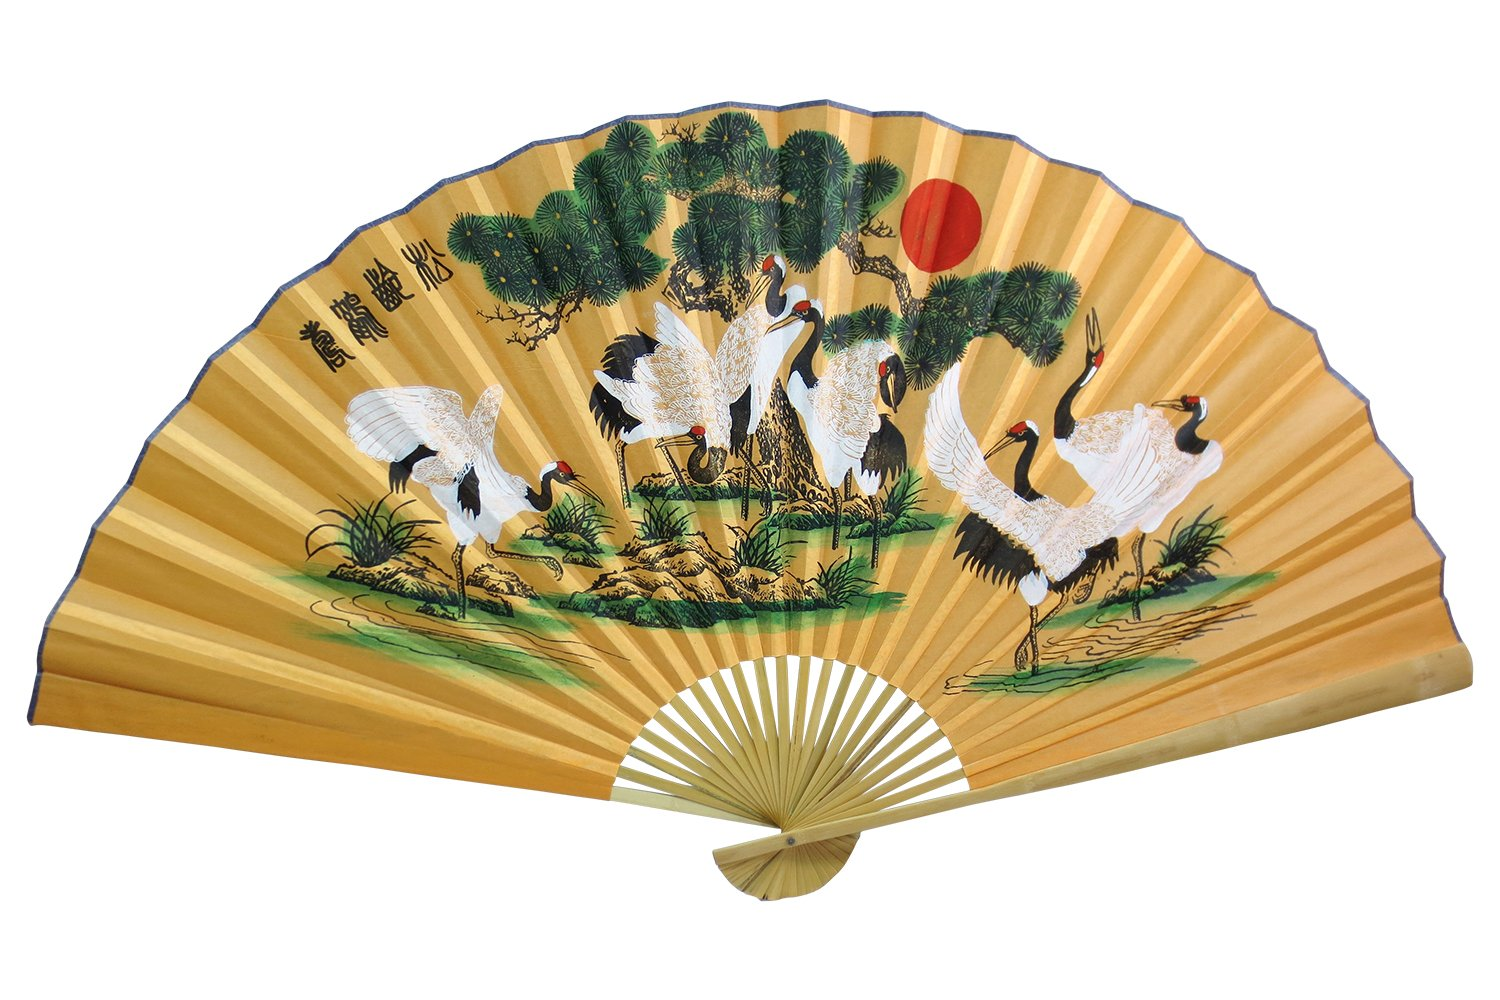 Amazon.com: Oriental Feng Shui Wall Fan | Asian Wall Decor 35"|1500|1000|?|450d65dd11ce0698ee4ce55547be859d|False|UNLIKELY|0.3504548668861389